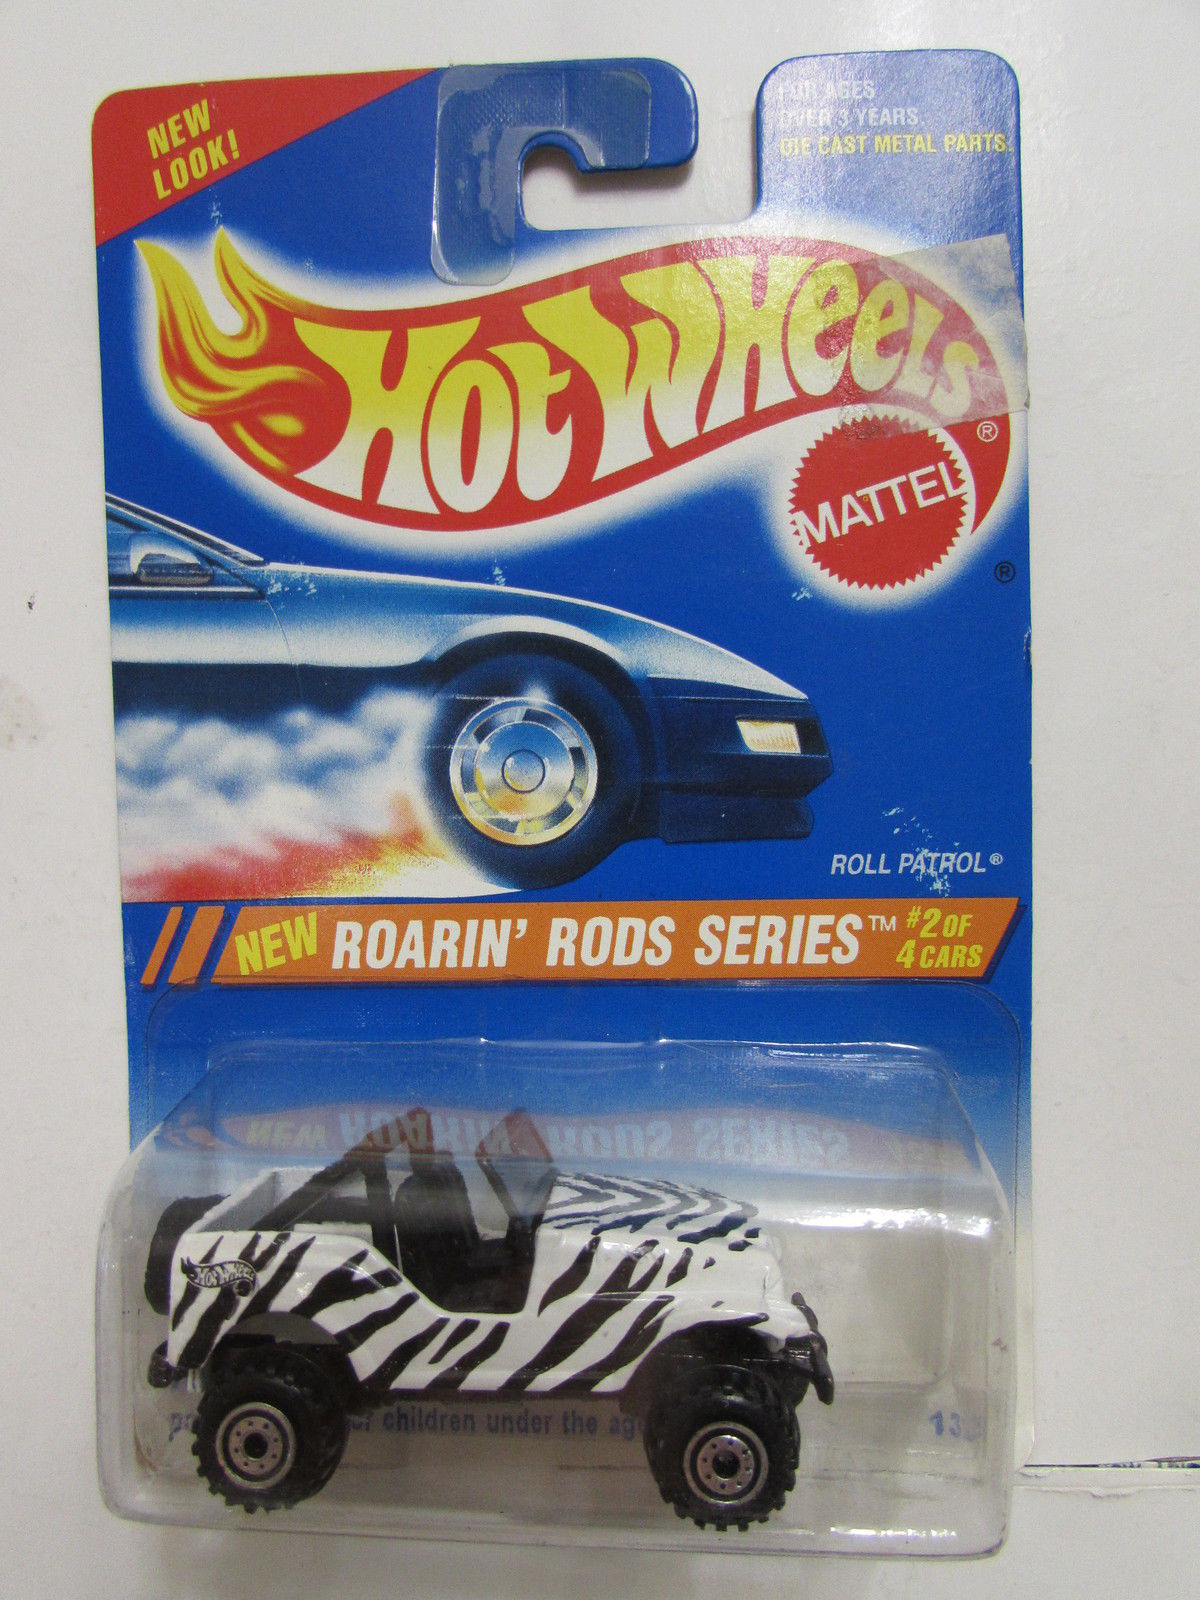 HOT WHEELS 1995 ROARIN' RODS SERIES - ROLL PATROL #304 CHROME RIMS